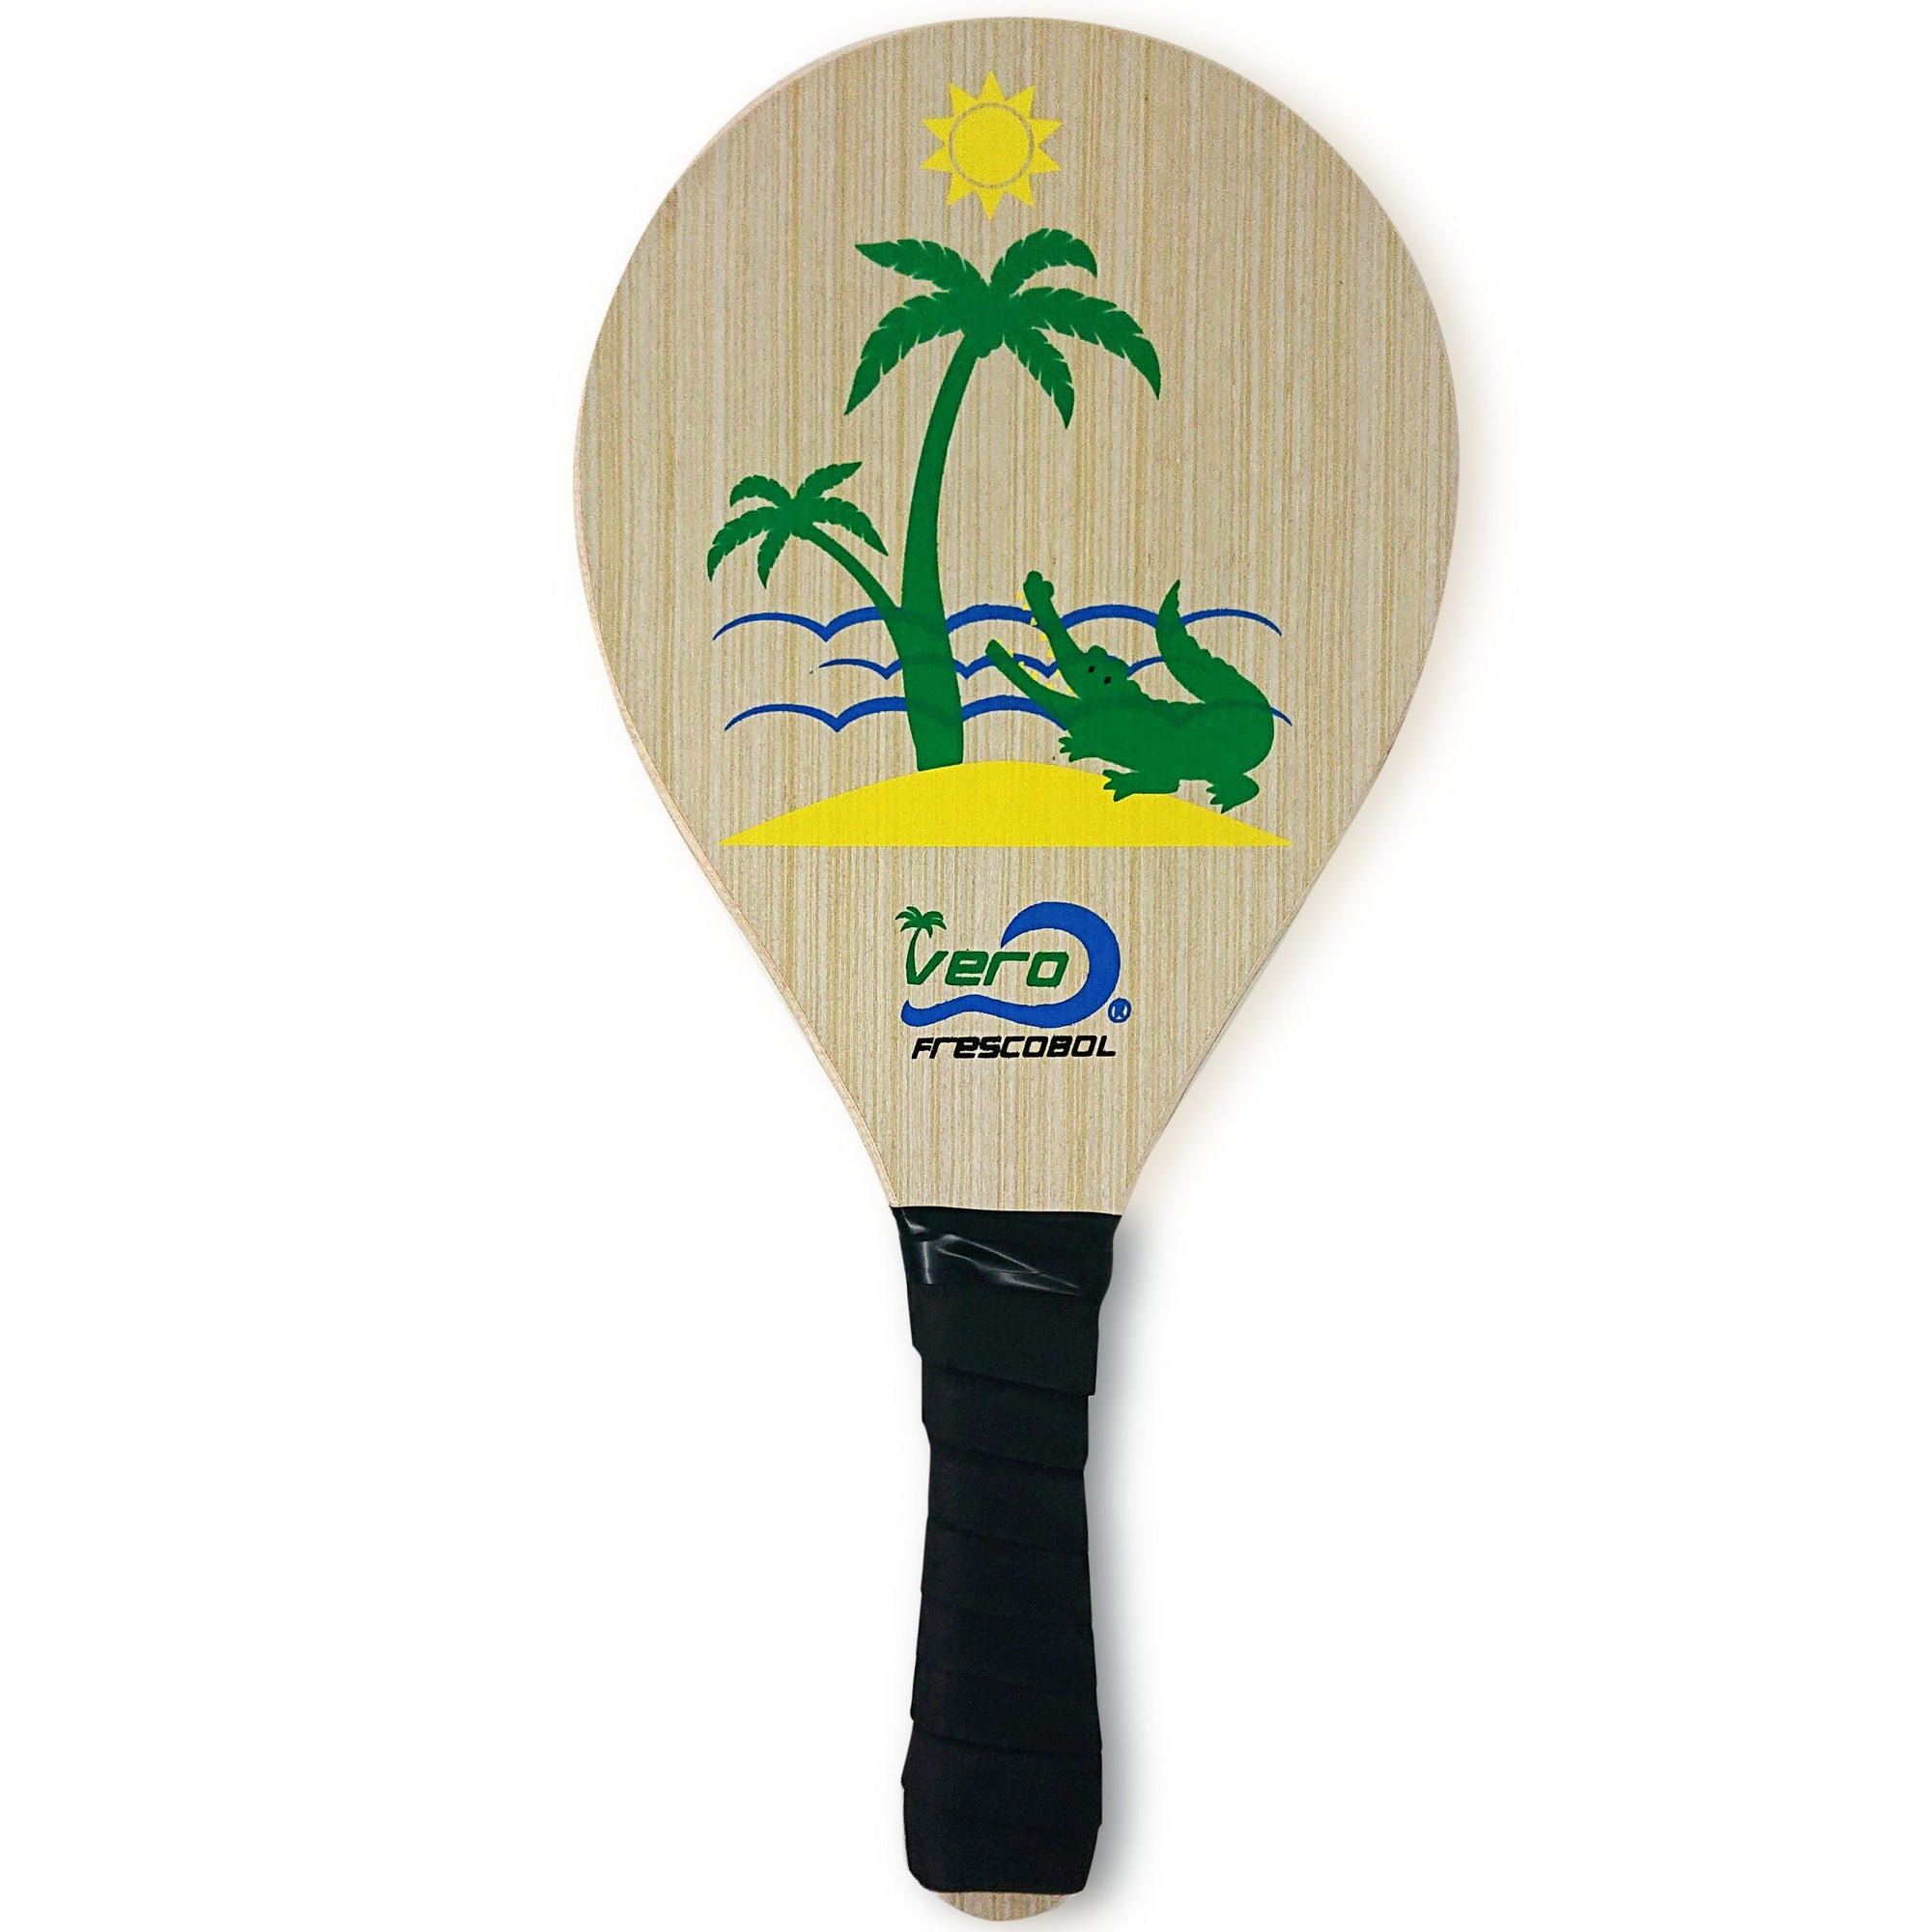 One Florida Green Gator Starter Scratch-n-dent Paddle